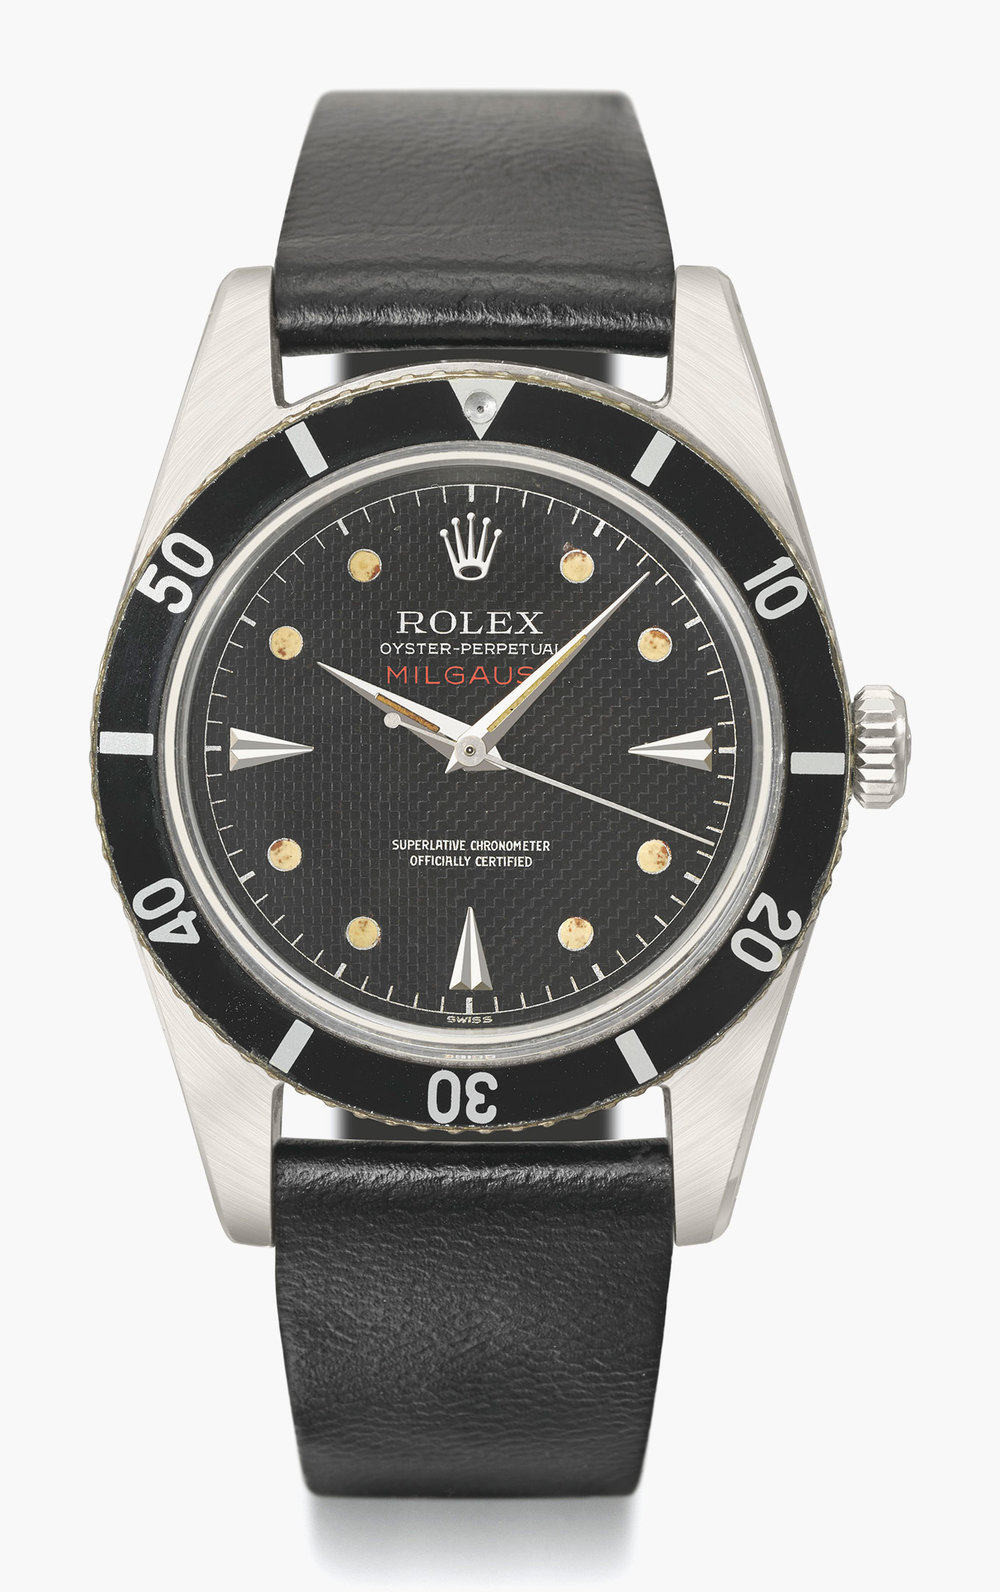 rolex-stainless-steel-automatic-anti-magnetic-wristwatch-with-sweep-centre-seconds-and-honeycomb-dial-milgauss-ref-6543-circa-1955.jpg